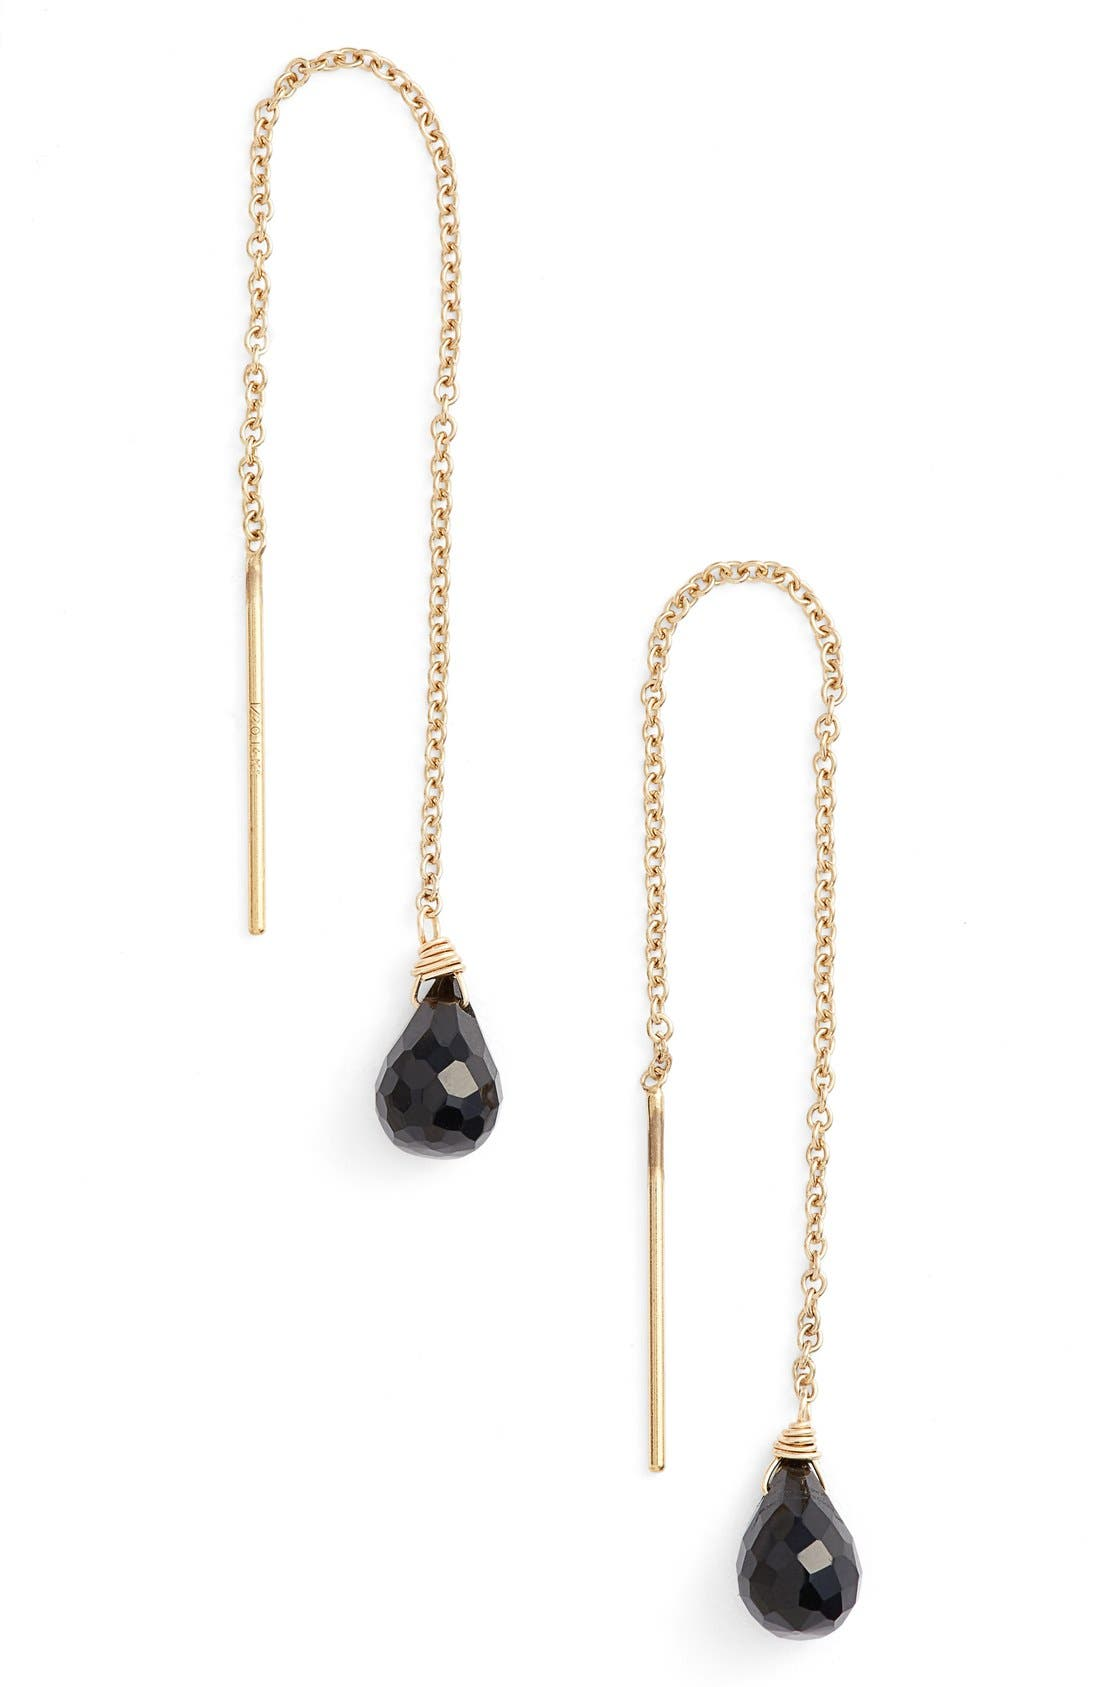 LEAH ALEXANDRA Semiprecious Stone Threader Earrings